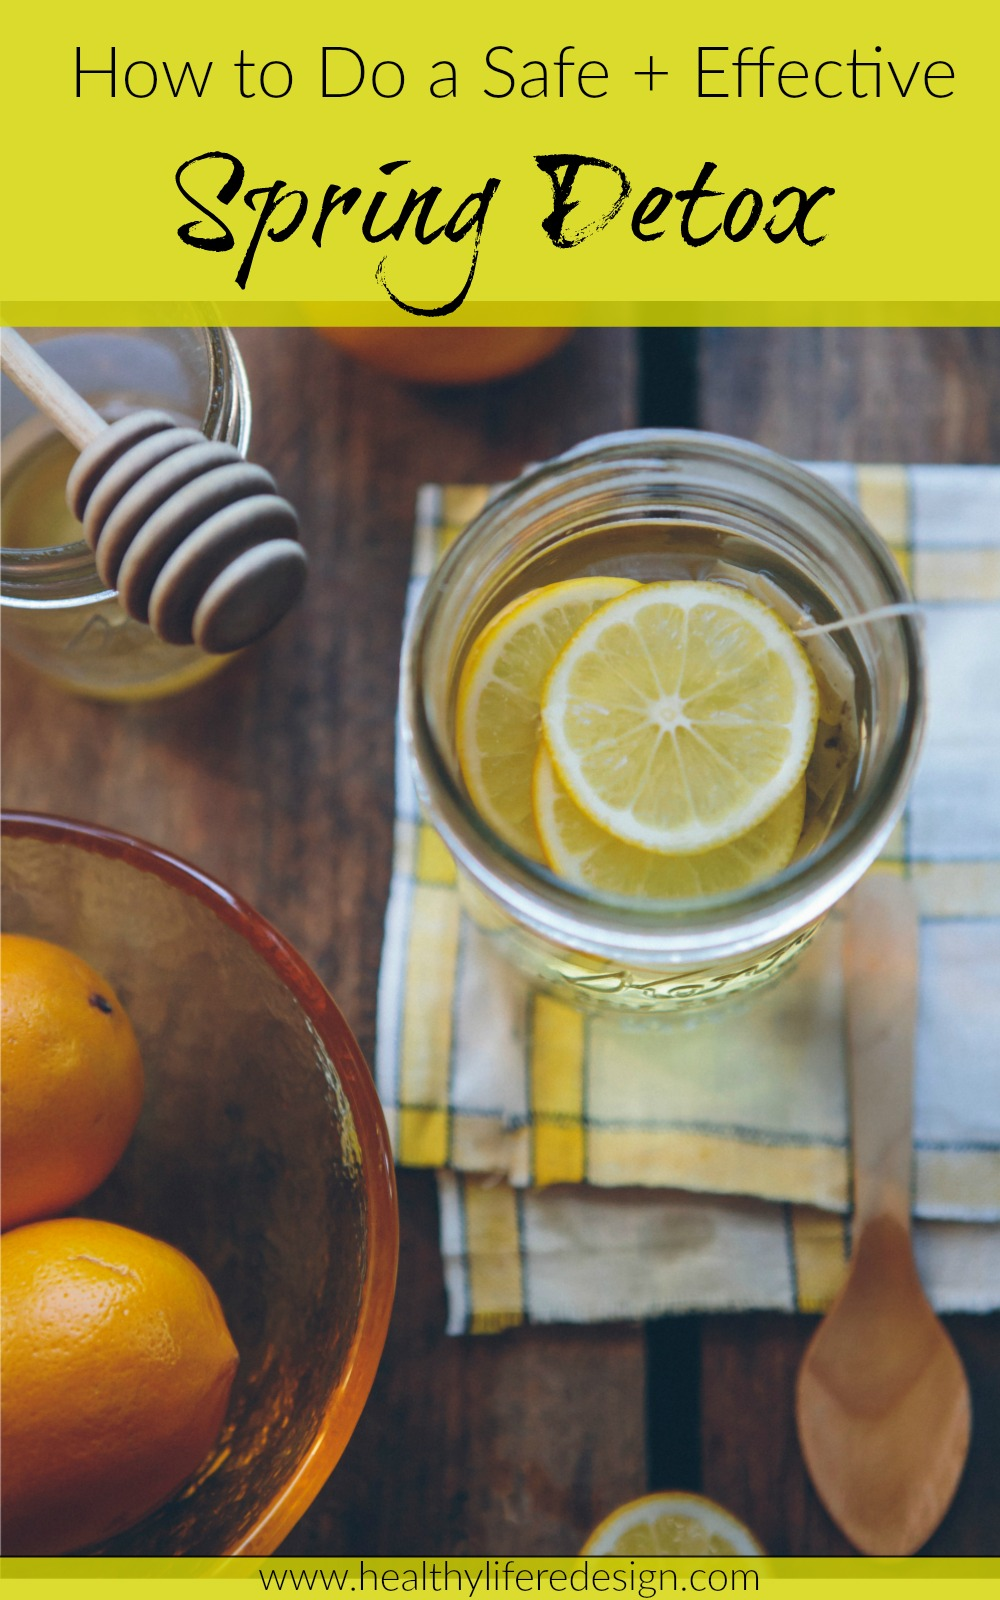 How to do a safe and effective spring detox - A naturopathic doctor-designed guide